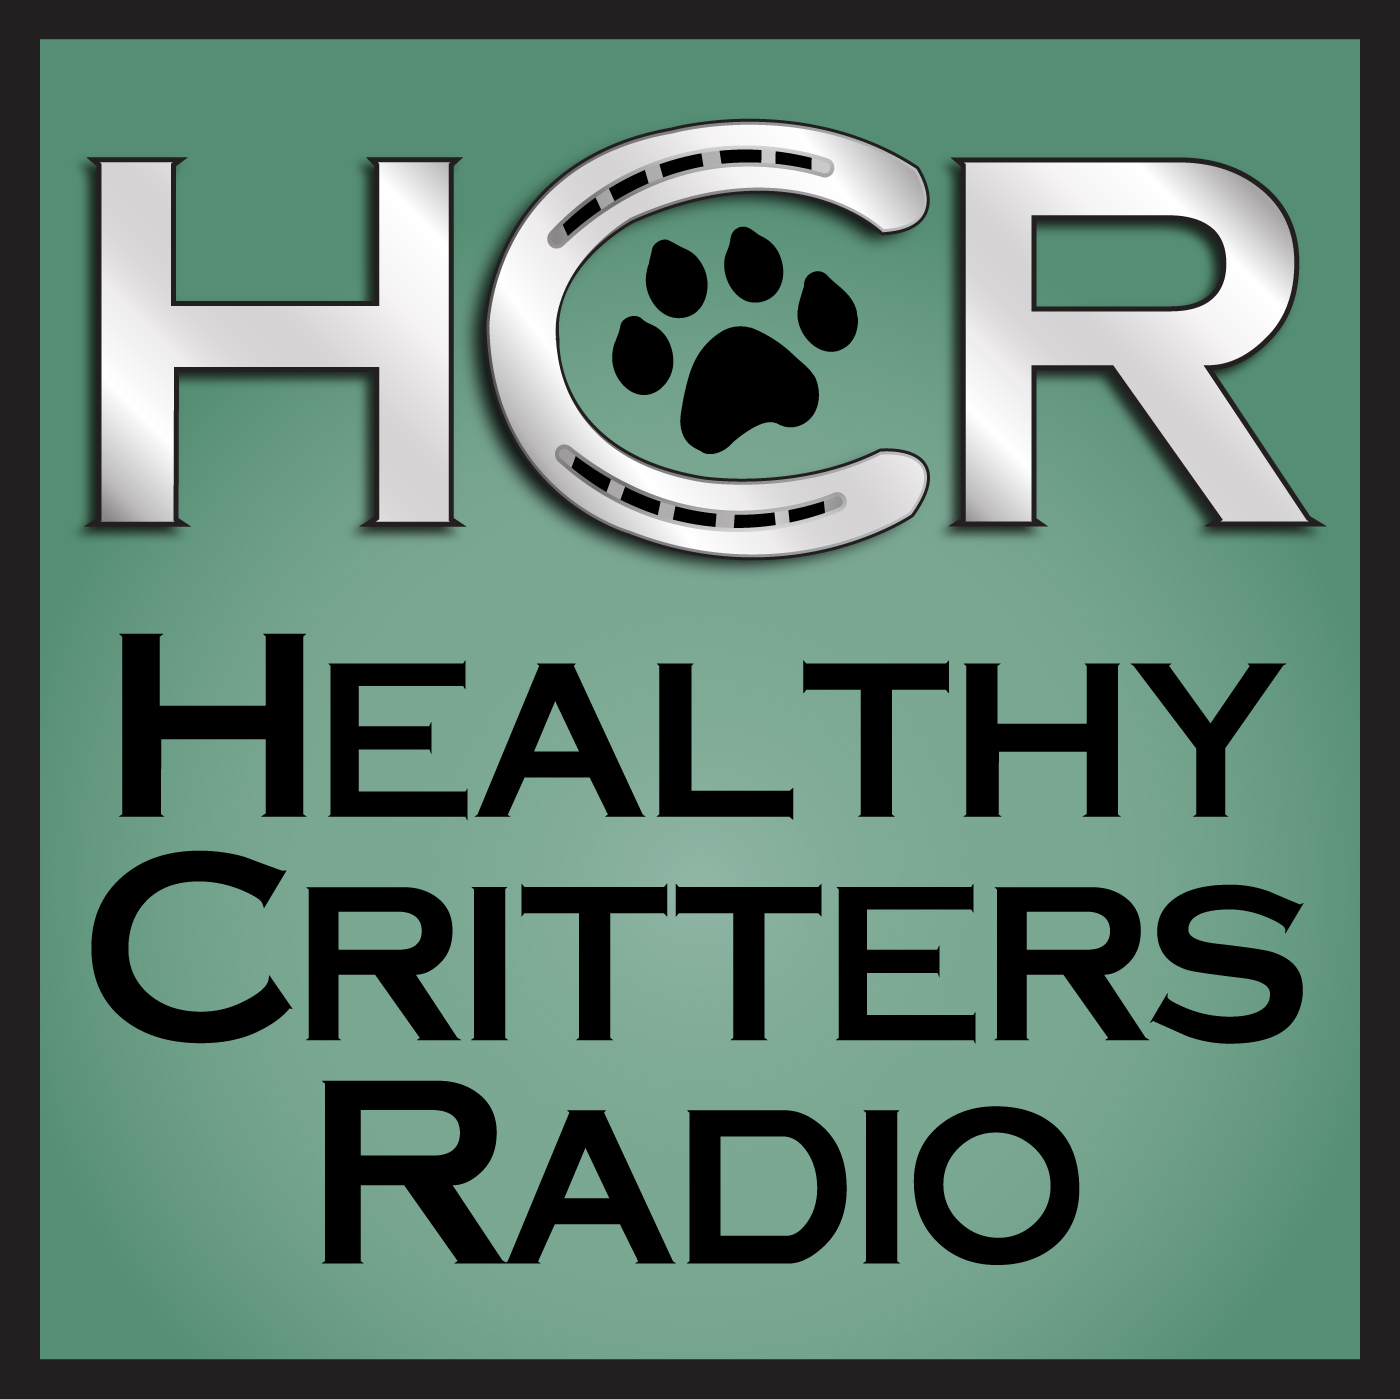 Healthy Critters Radio – Horse Radio Network